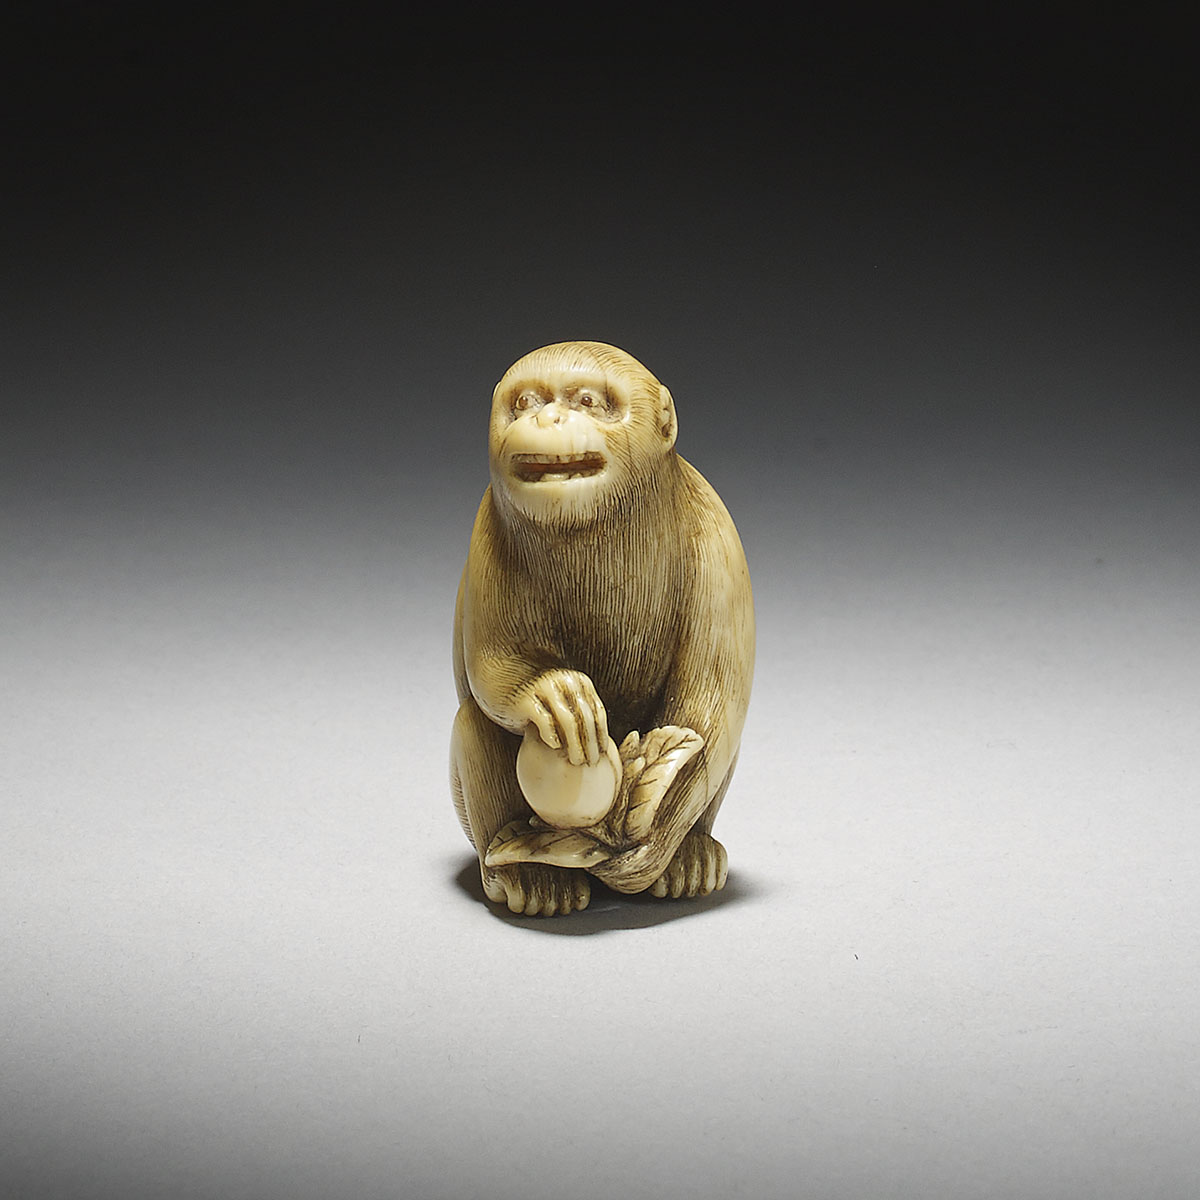 Ivory Netsuke of a Monkey with a Peach by Okatori_MR2913_v1